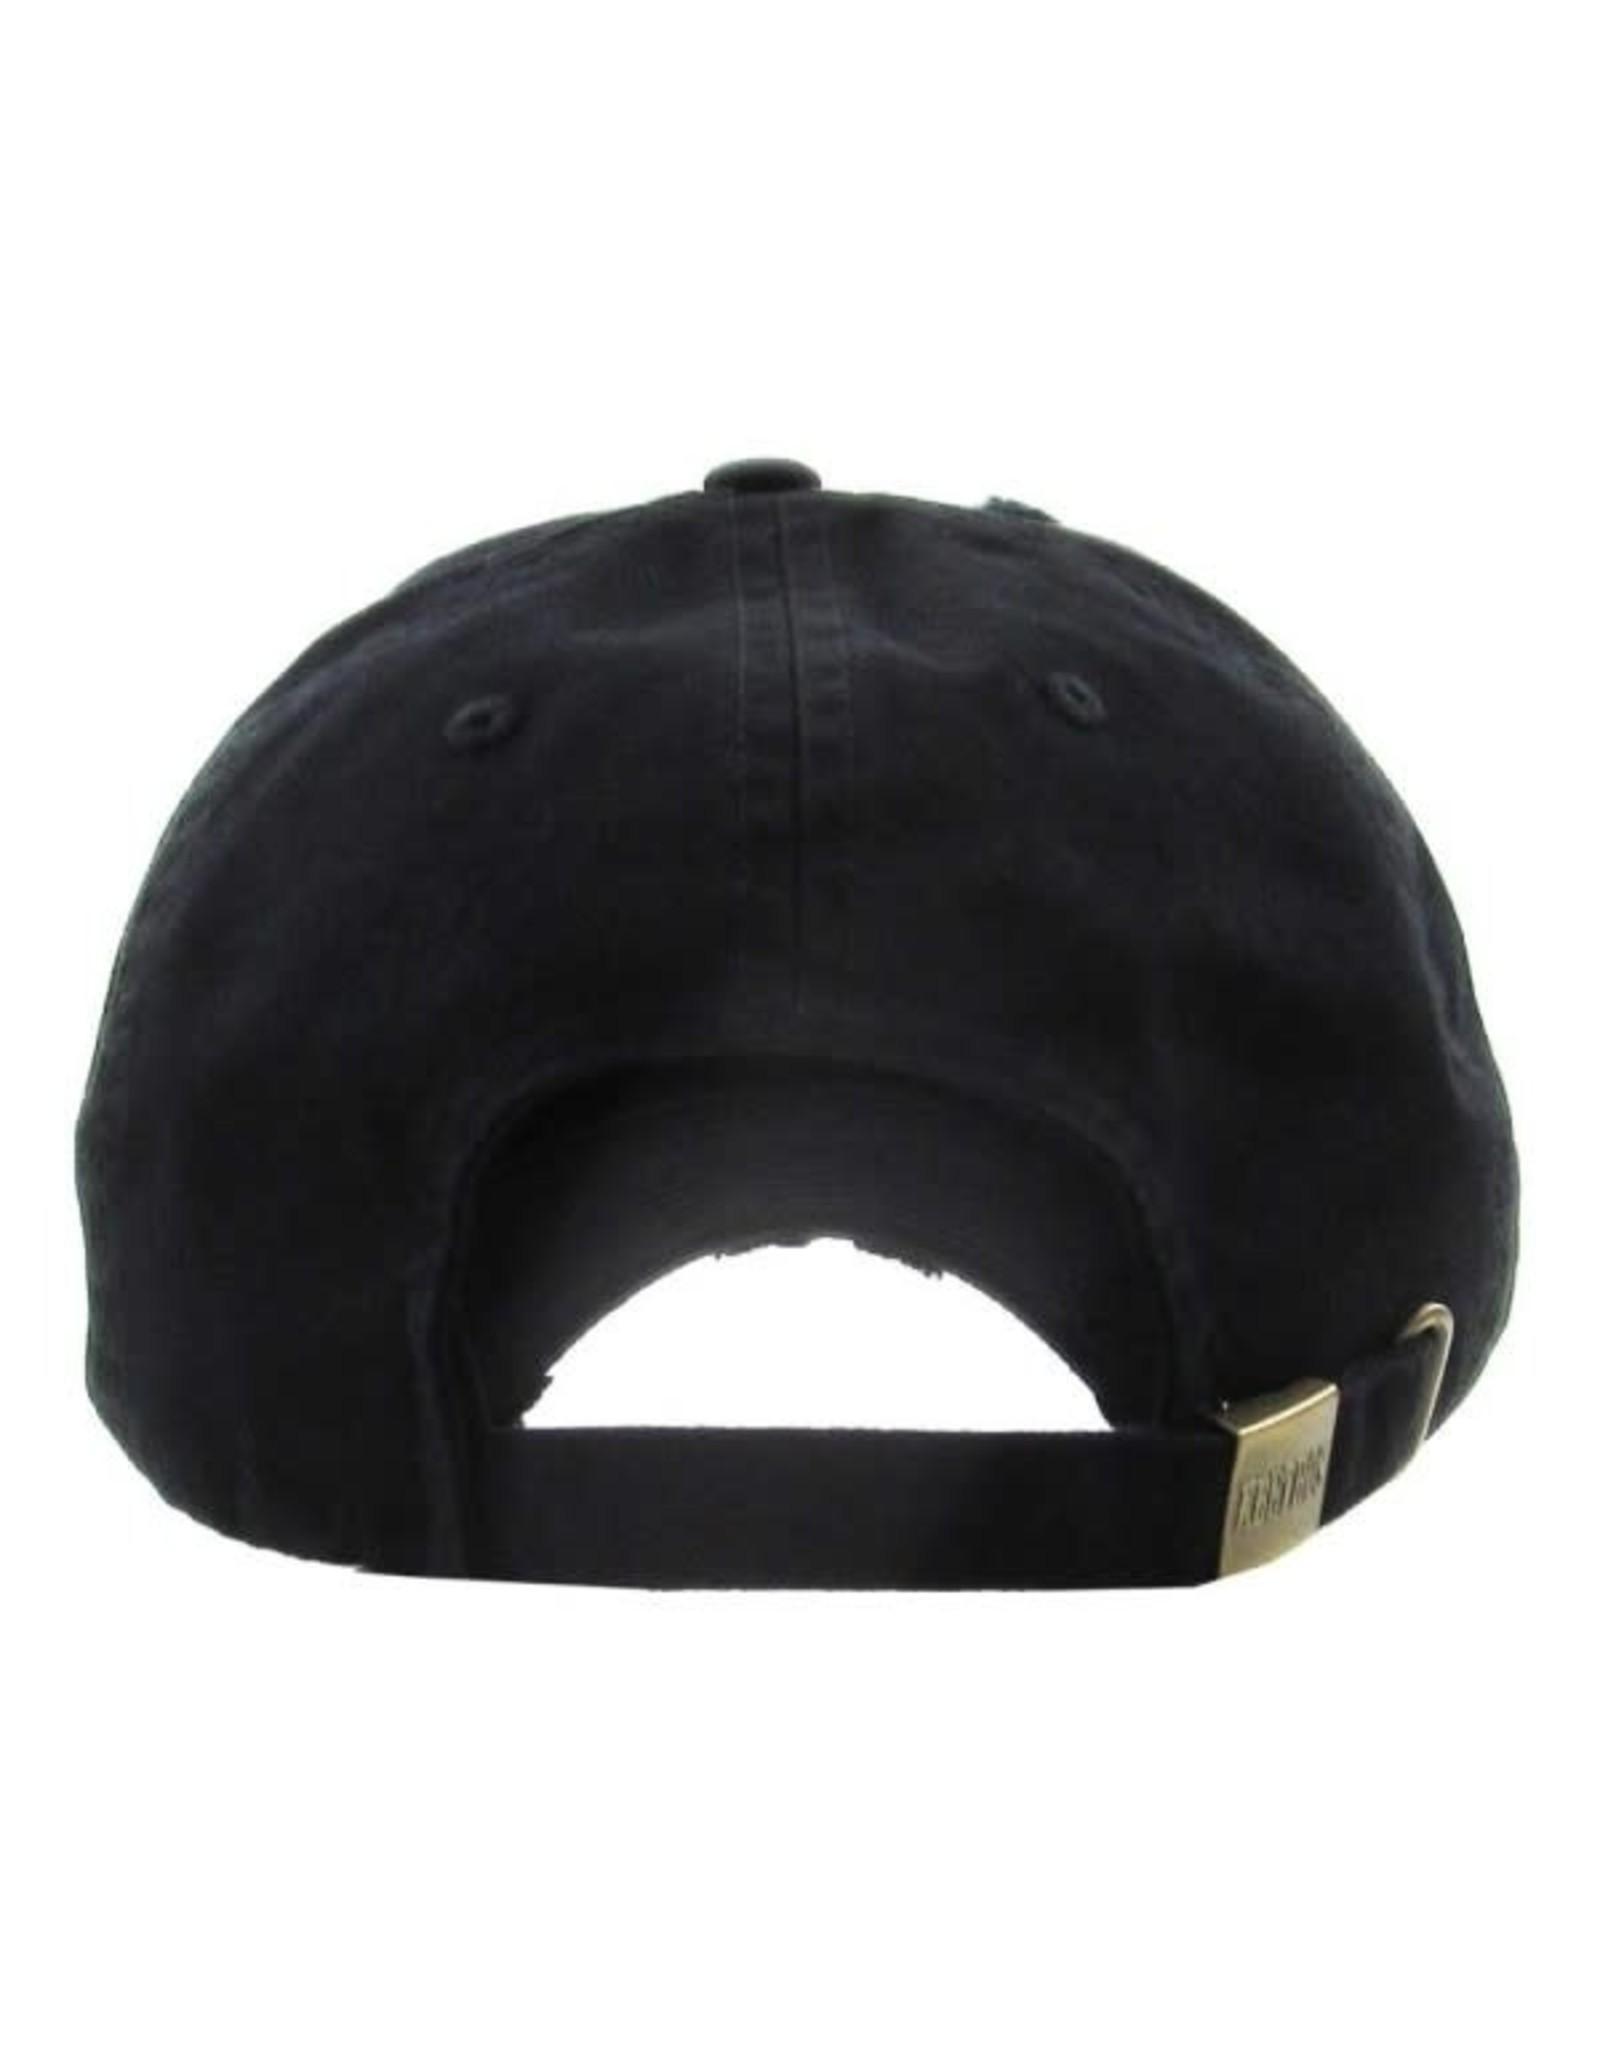 Distressed Flag black hat